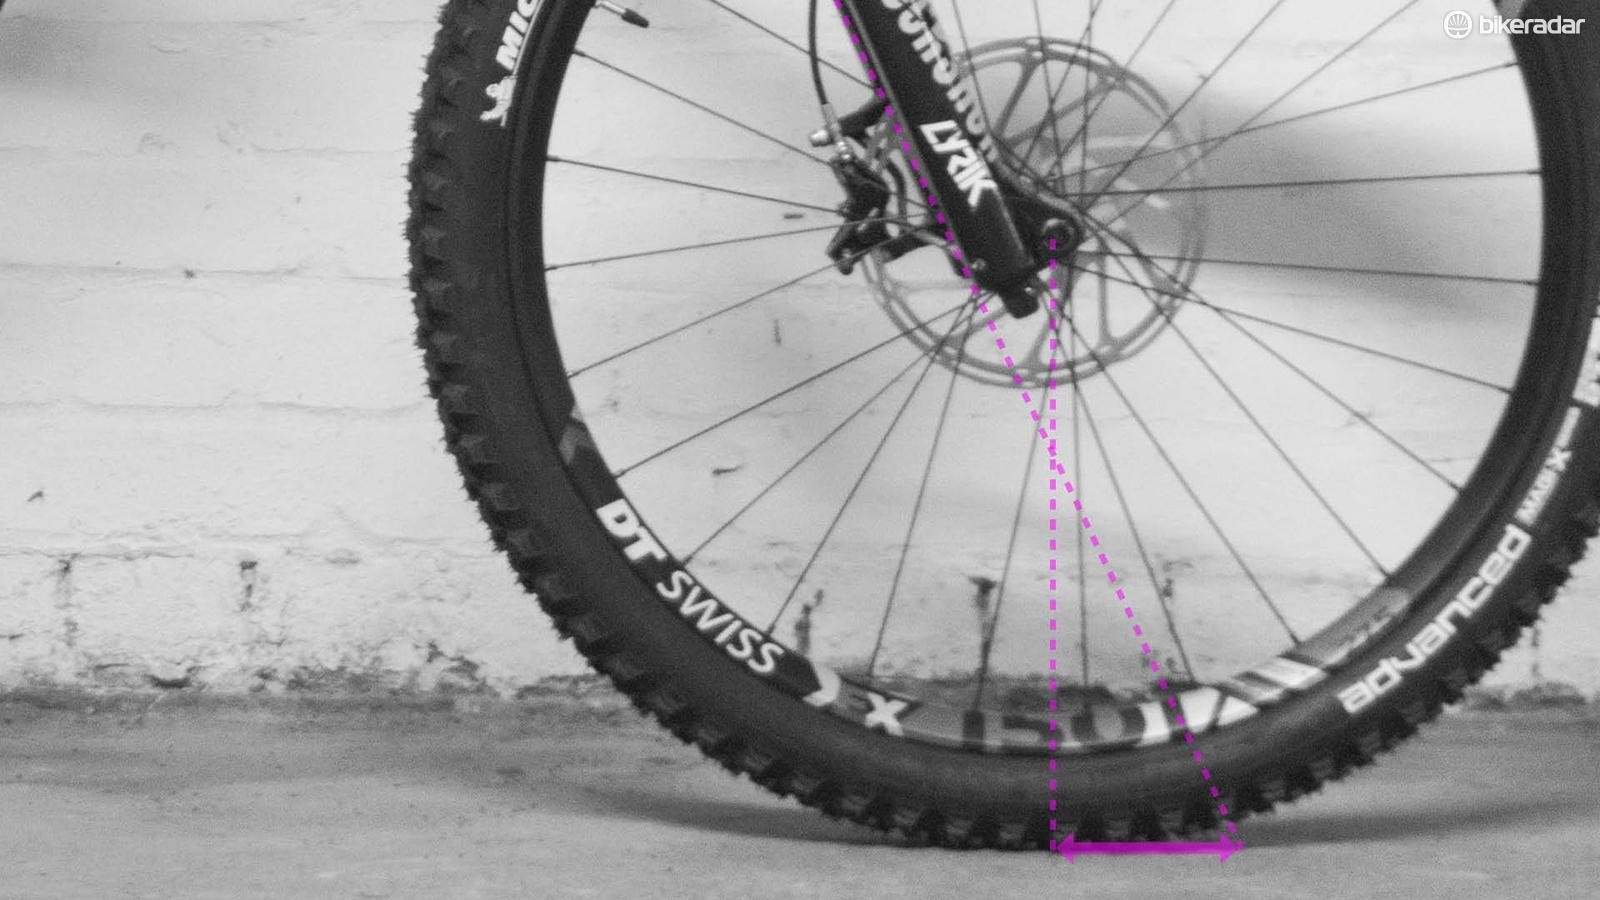 The horizontal measurement from contact patch to steering axis is the most quoted version of trail, but not the most accurate representation of the physics